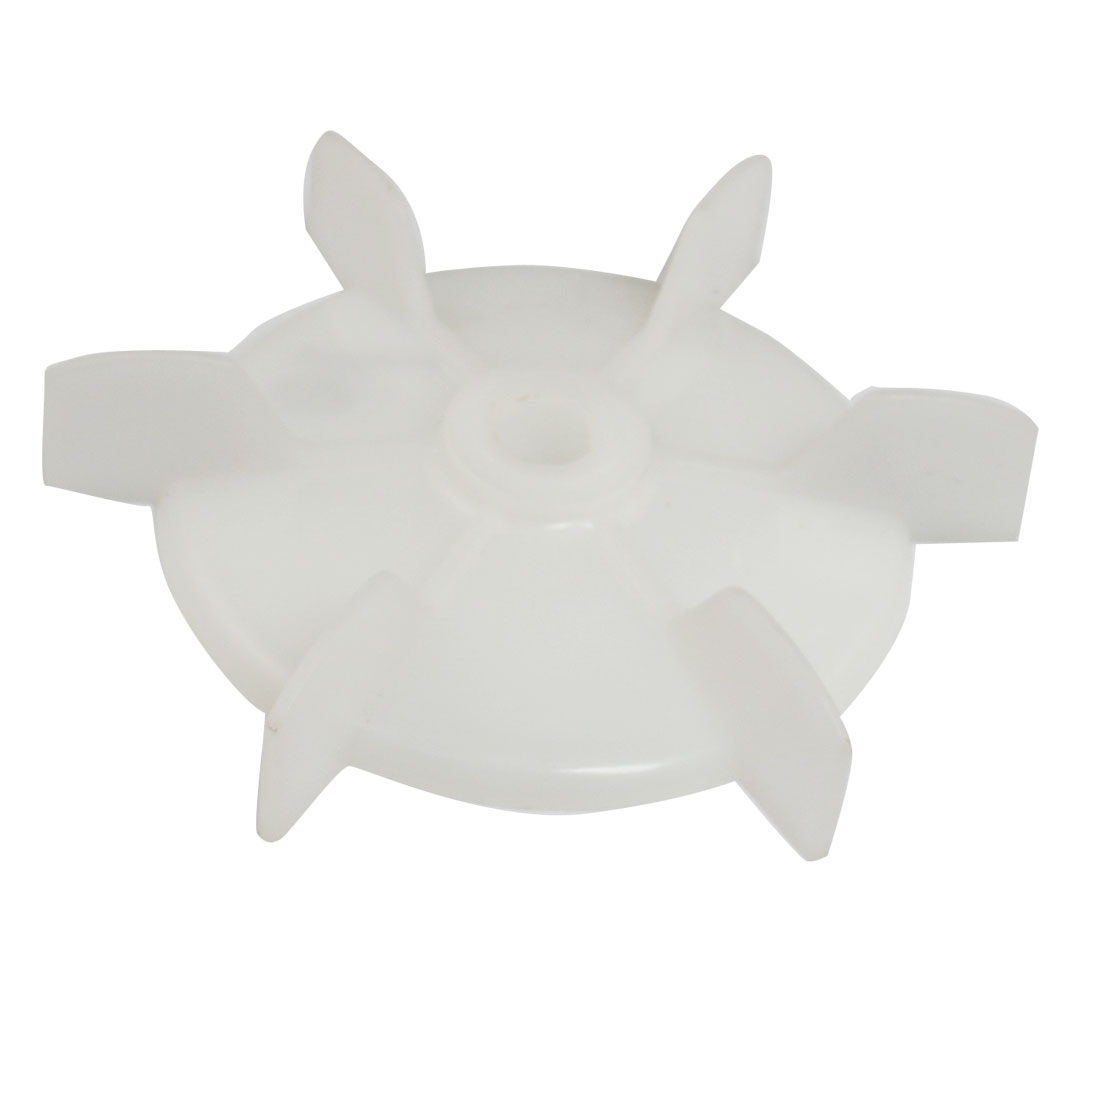 Spare Part 10mm Inner Diameter 6 Vanes Impeller Plastic Motor Fan Vane Wheel